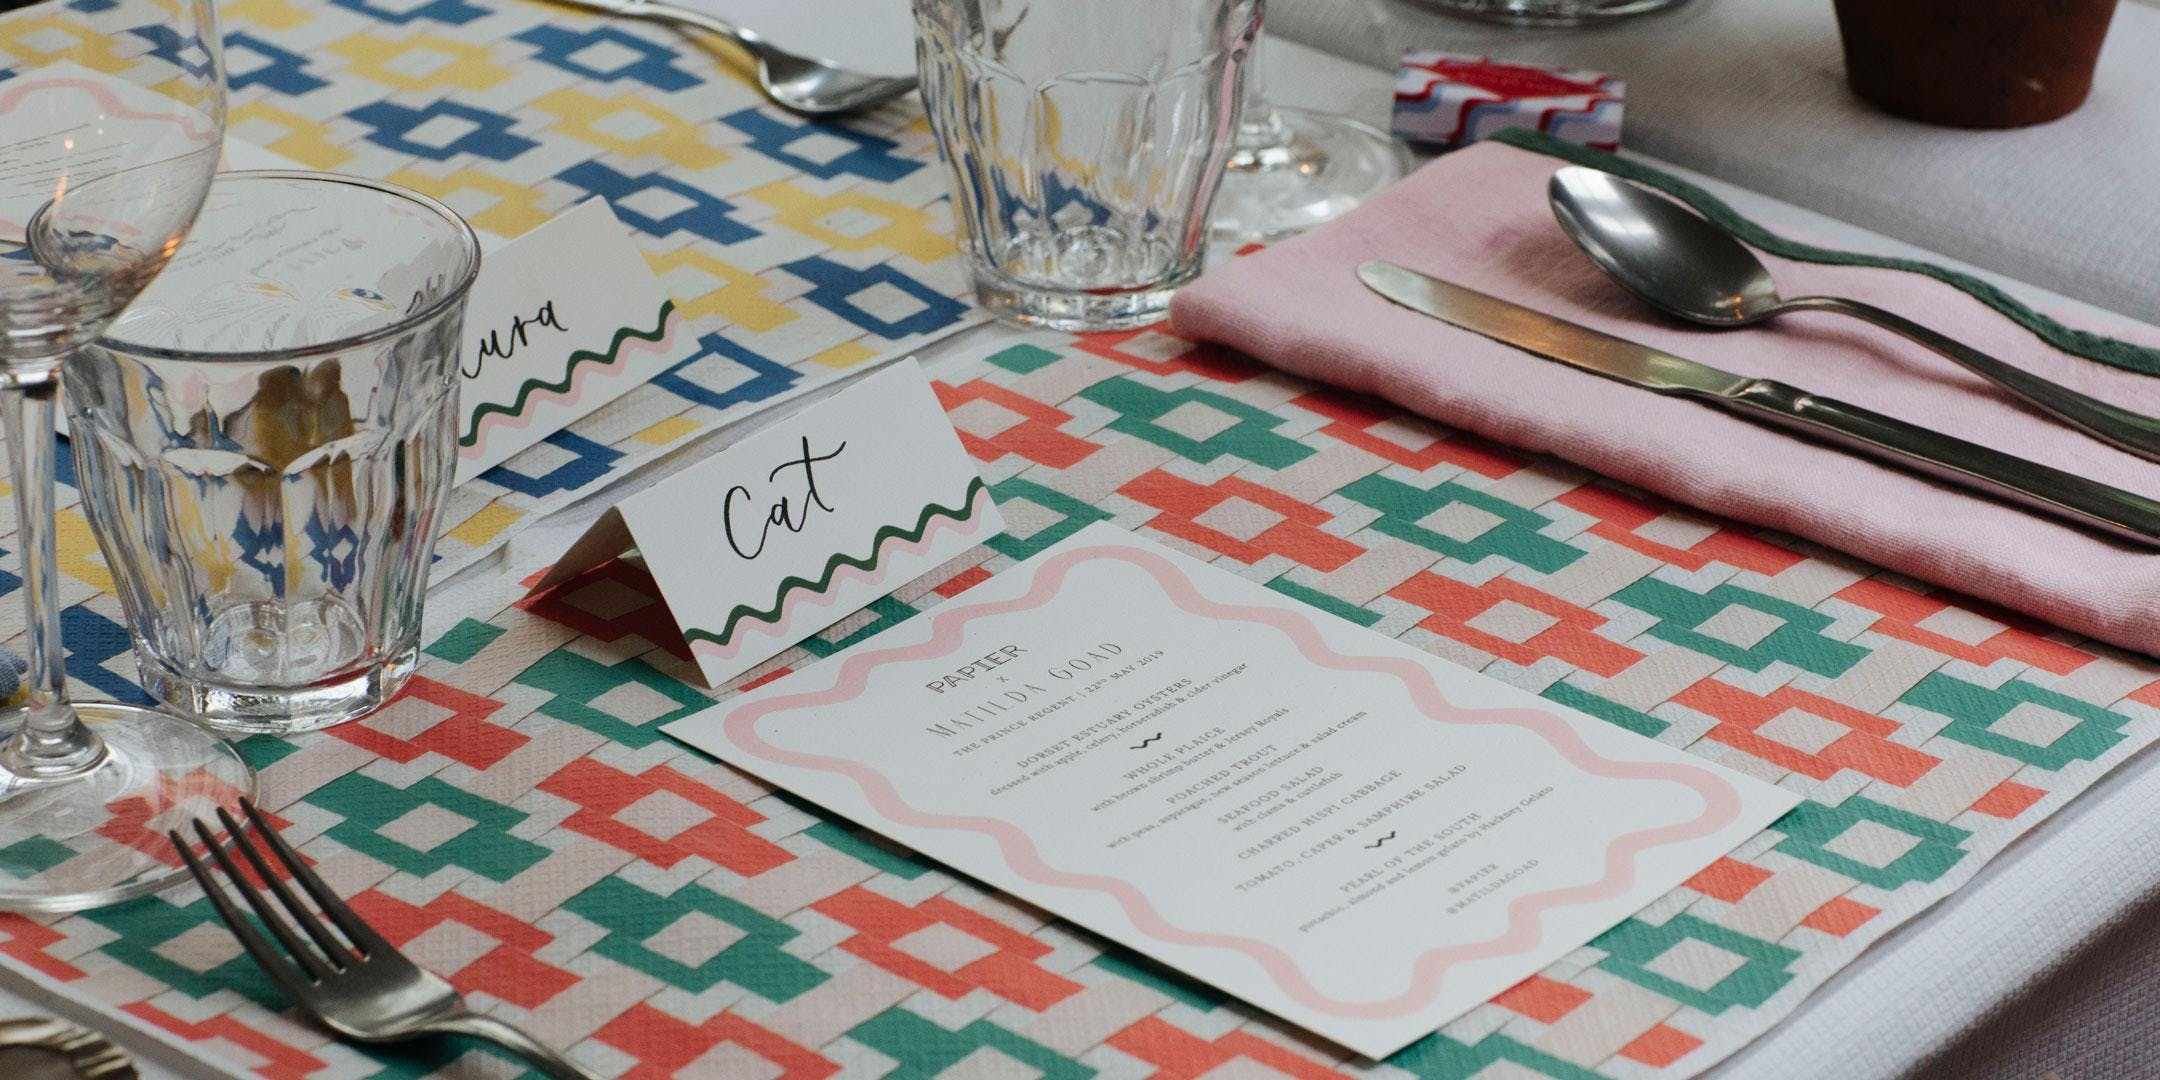 Supper Club with Mia Le Chef styled by Matilda Goad